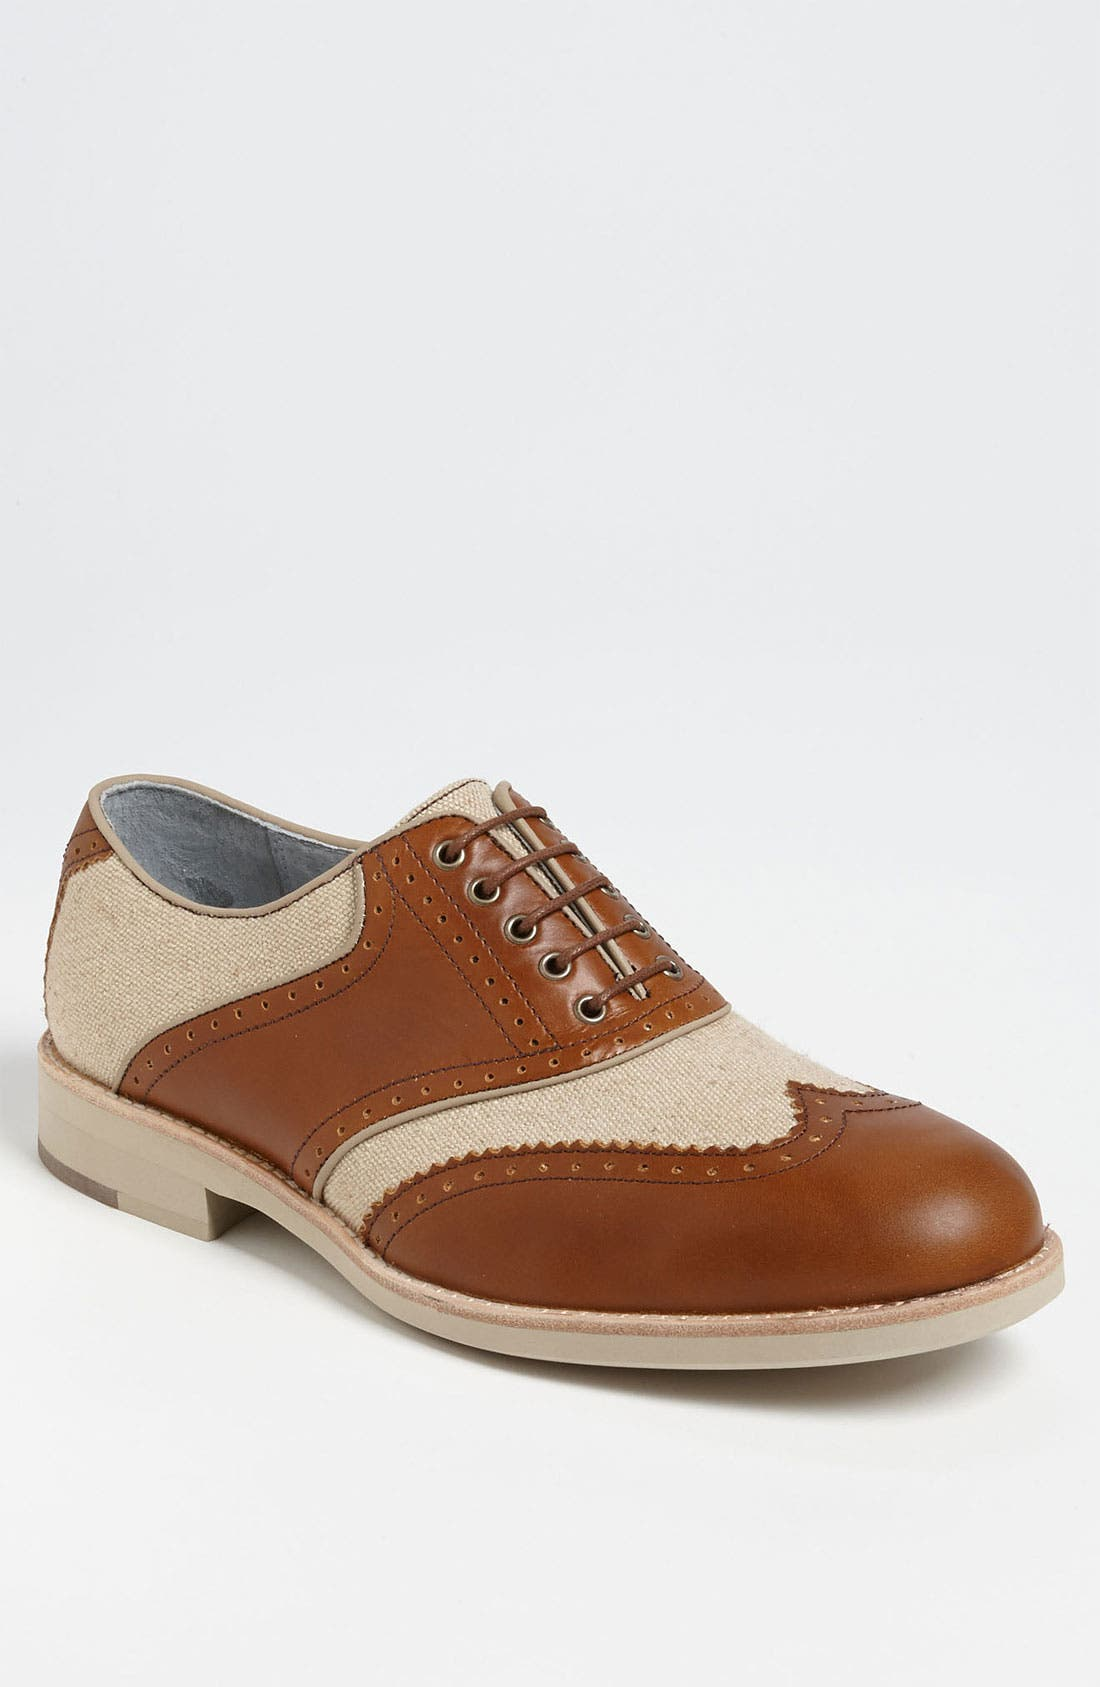 Alternate Image 1 Selected - Johnston & Murphy 'Ellington' Spectator Shoe